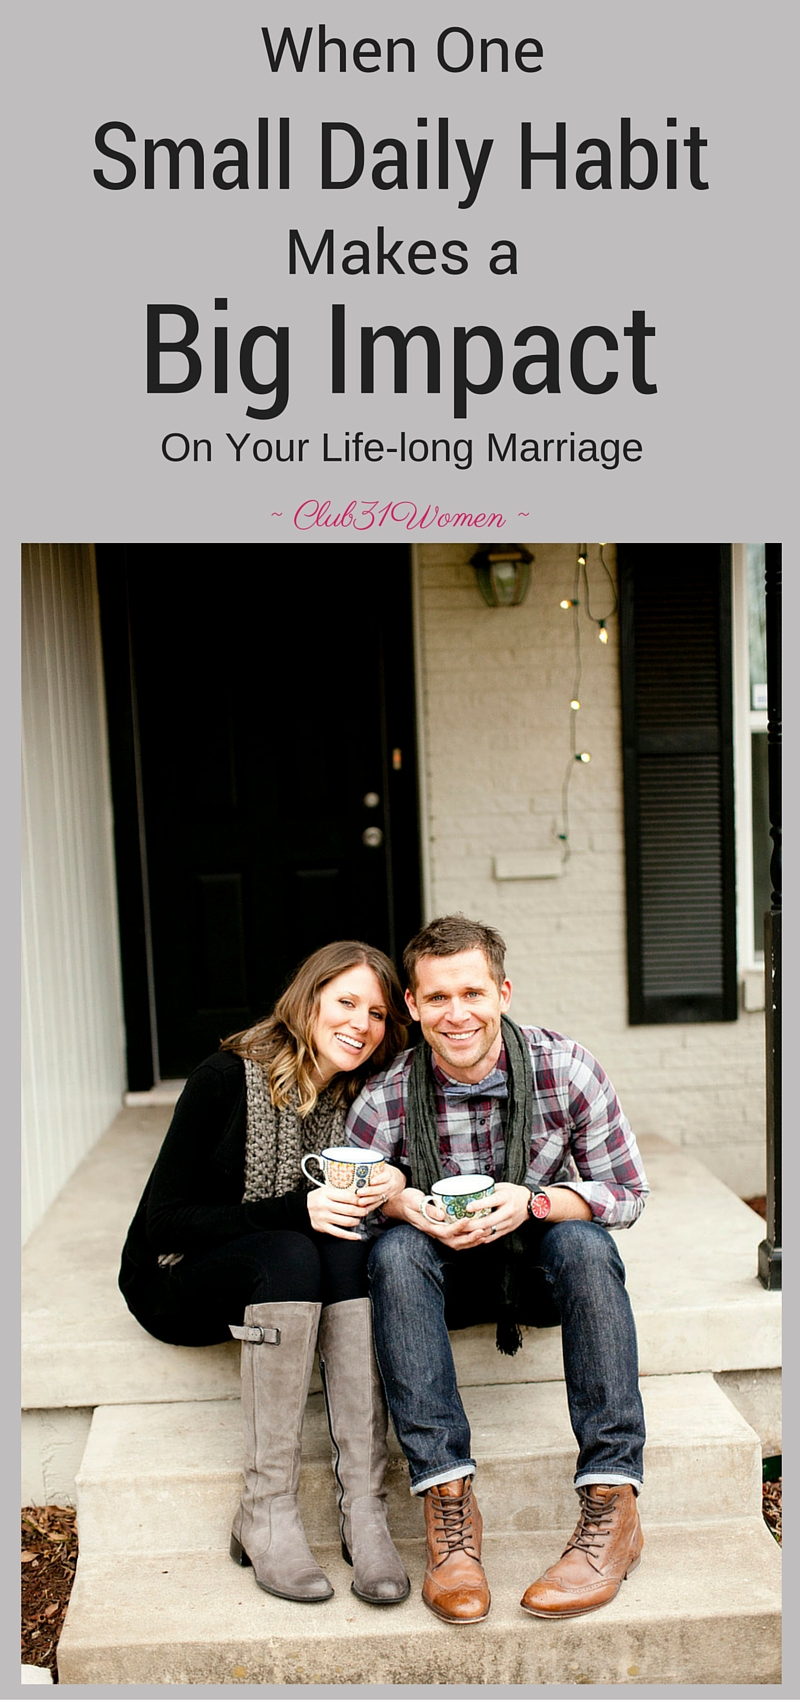 What if there was just one thing you could do to make a real impact on your marriage? A daily habit that makes for a happier, lifelong marriage? ~ Club31Women via @Club31Women